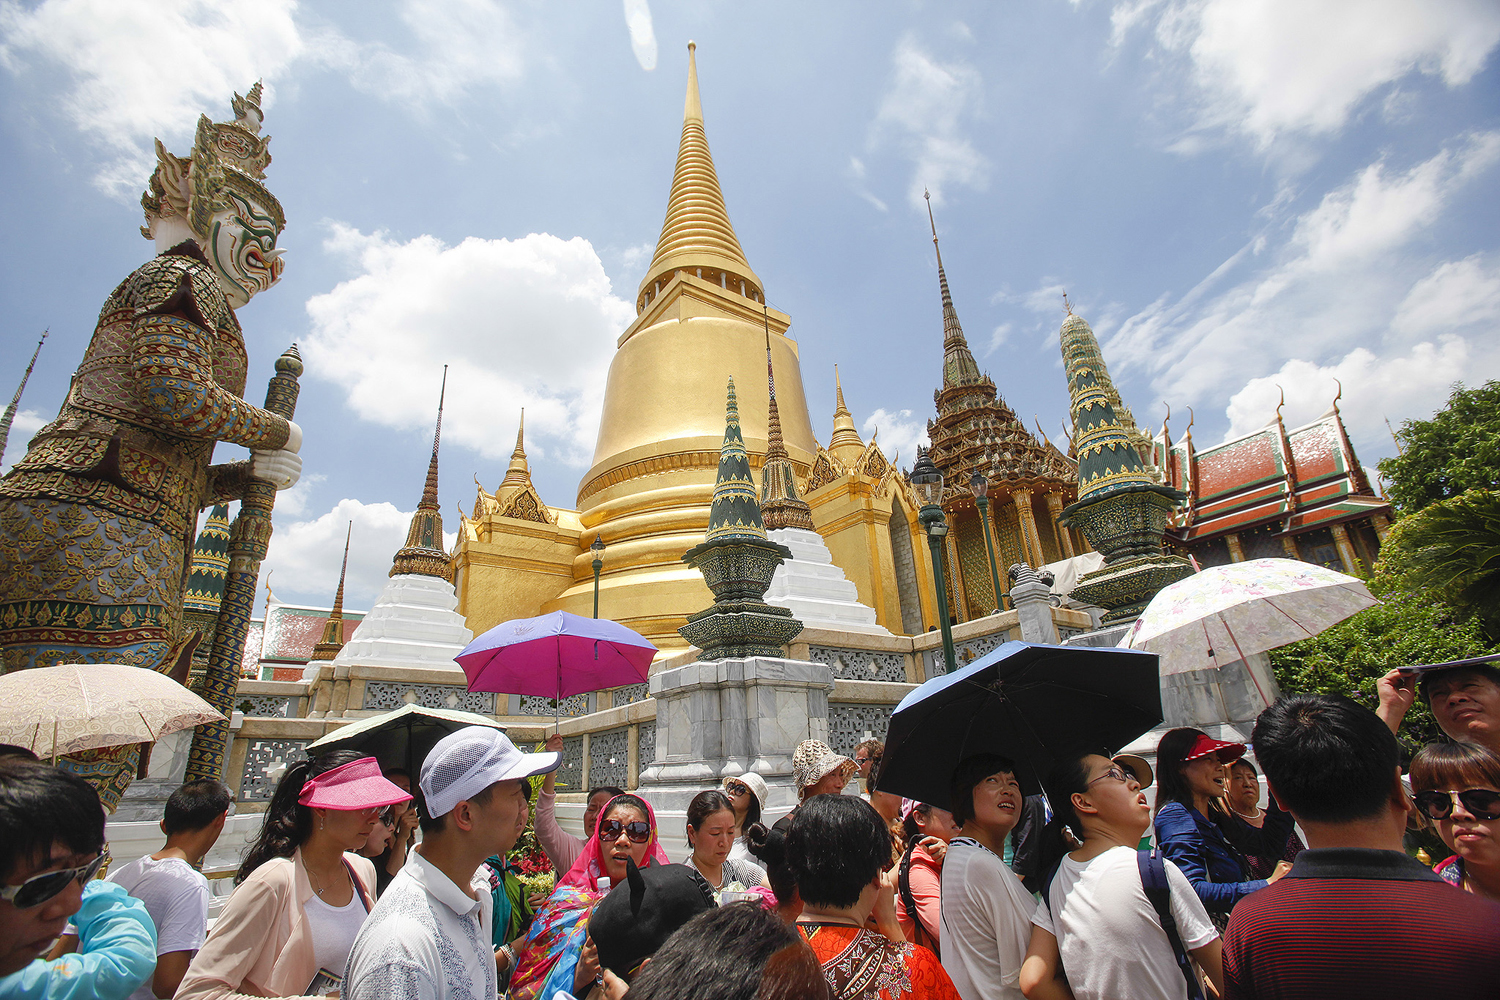 Compulsory travel insurance for foreign visitors at a 20-baht premium each is expected to debut this year, according to the Office of the Insurance Commission.